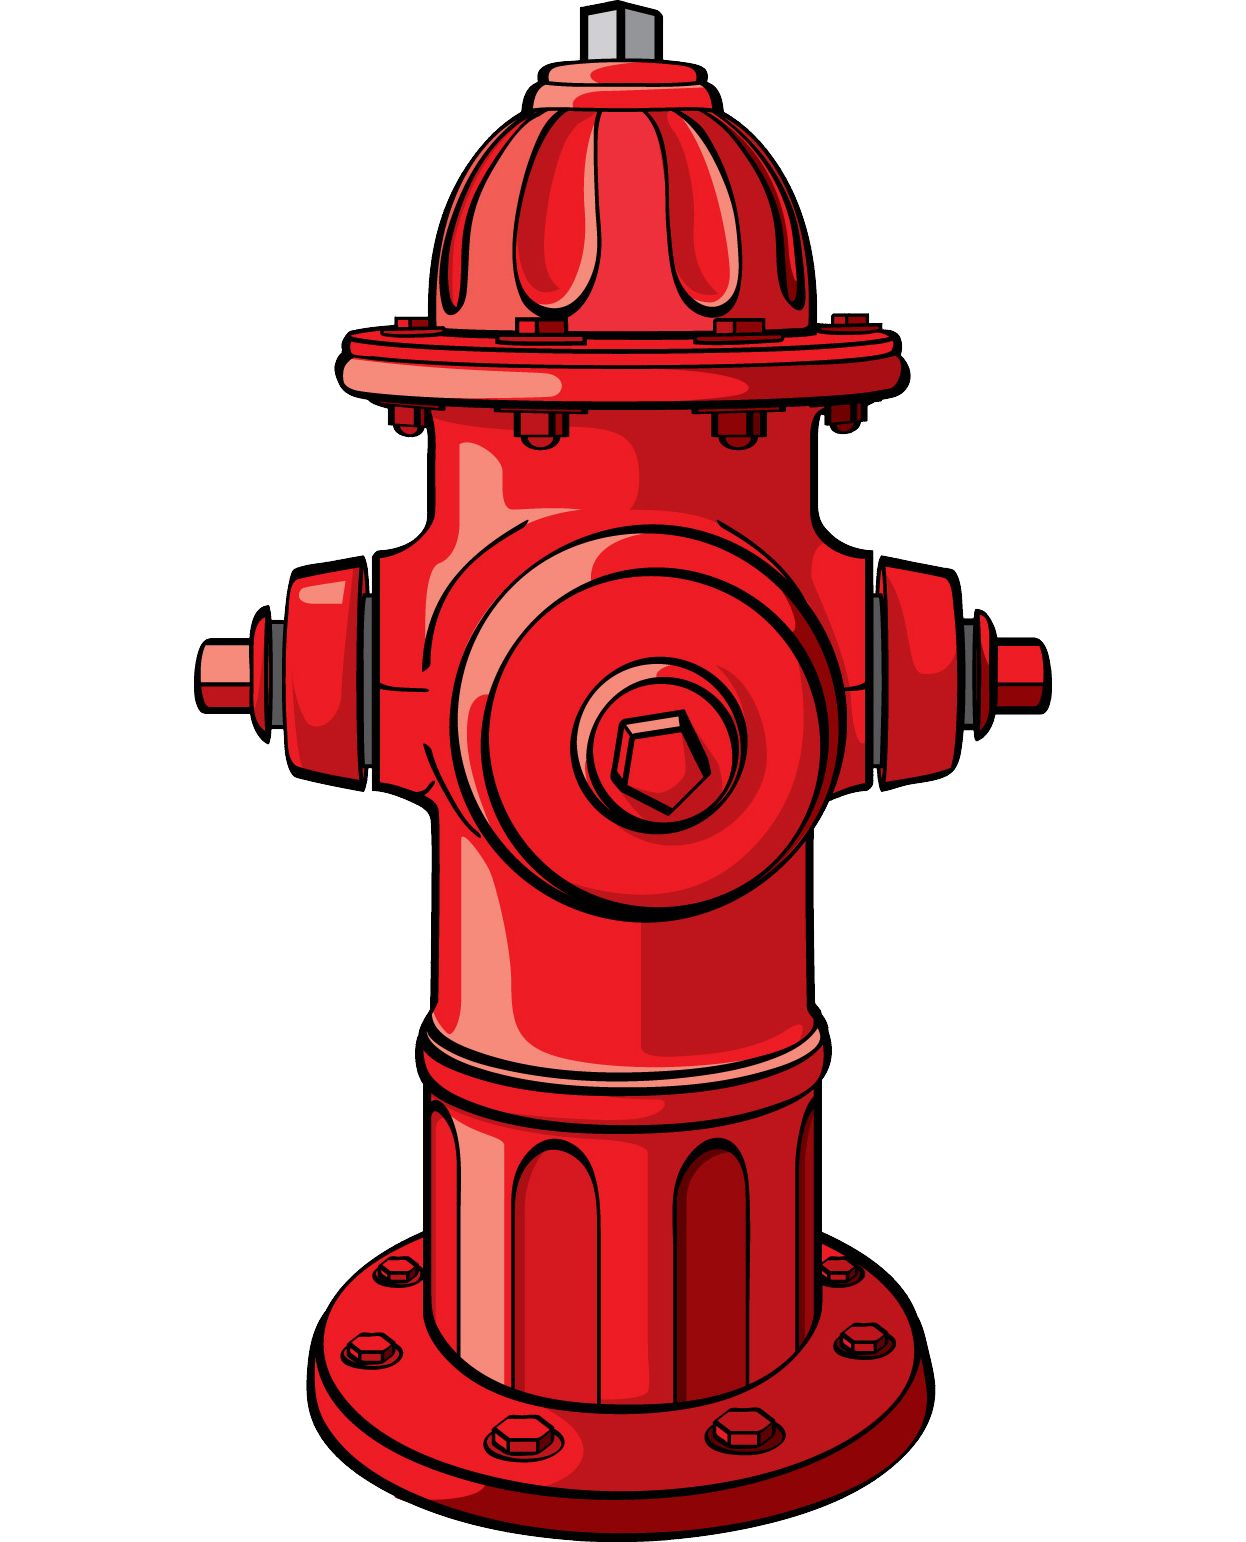 Firefighter clipart building. Fire hydrant clip art